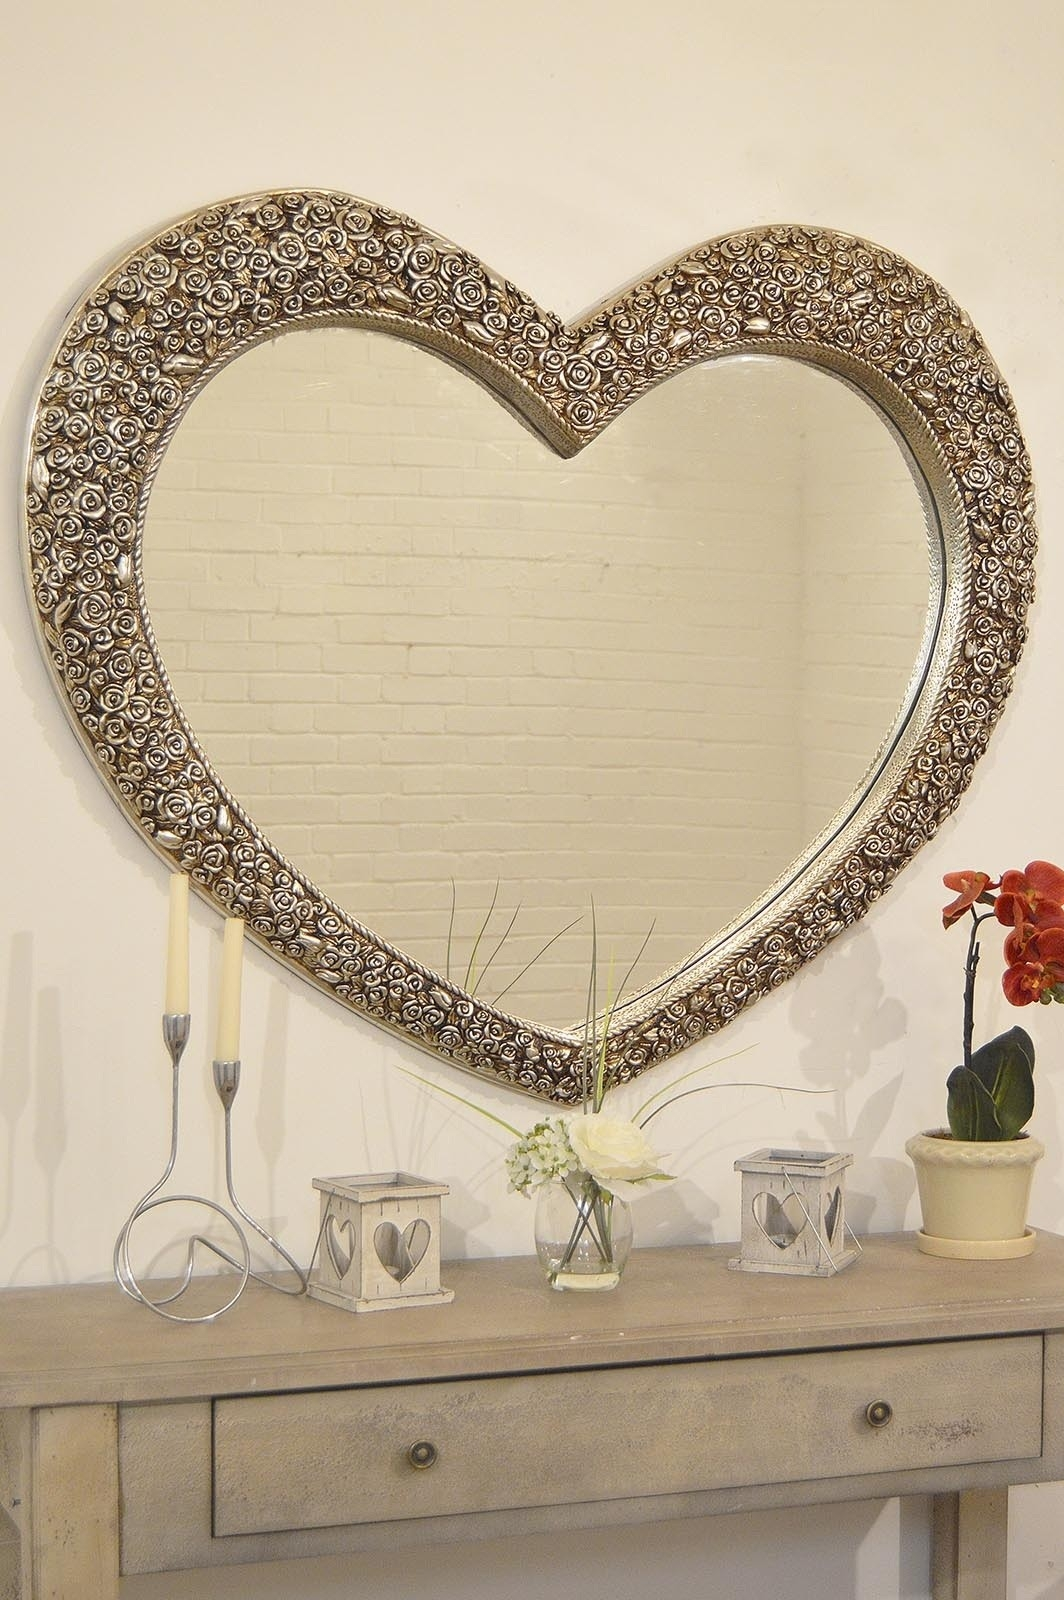 Wall Mirrors Images Bathroom Mirrors West Elm Wall Mirrors West With Large Silver Vintage Mirror (Image 14 of 15)